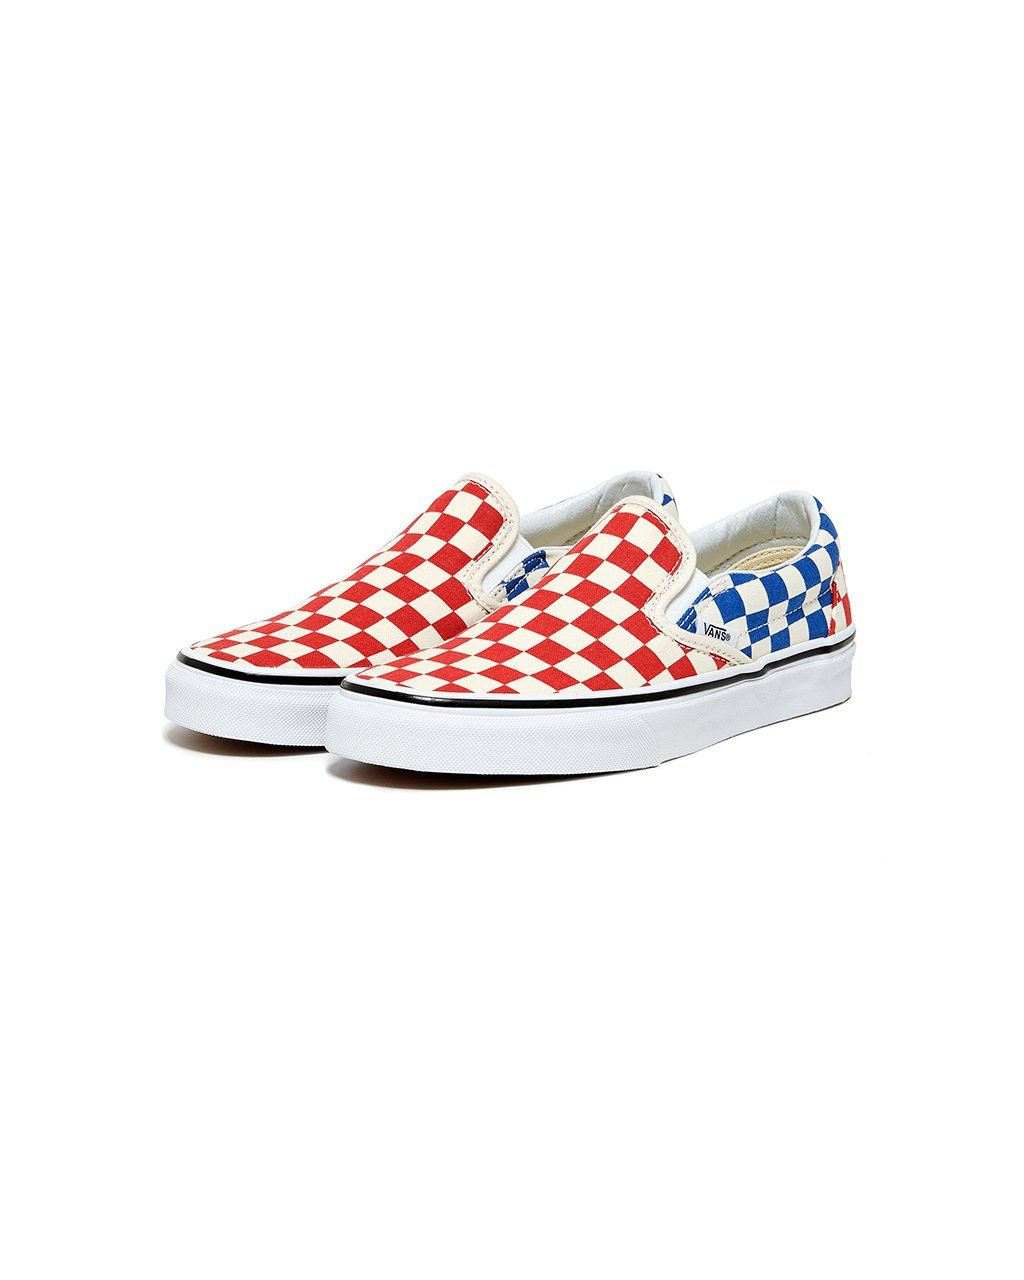 90daa75568 classic slip-on - red and blue check by vans - shoes - ban.do ...